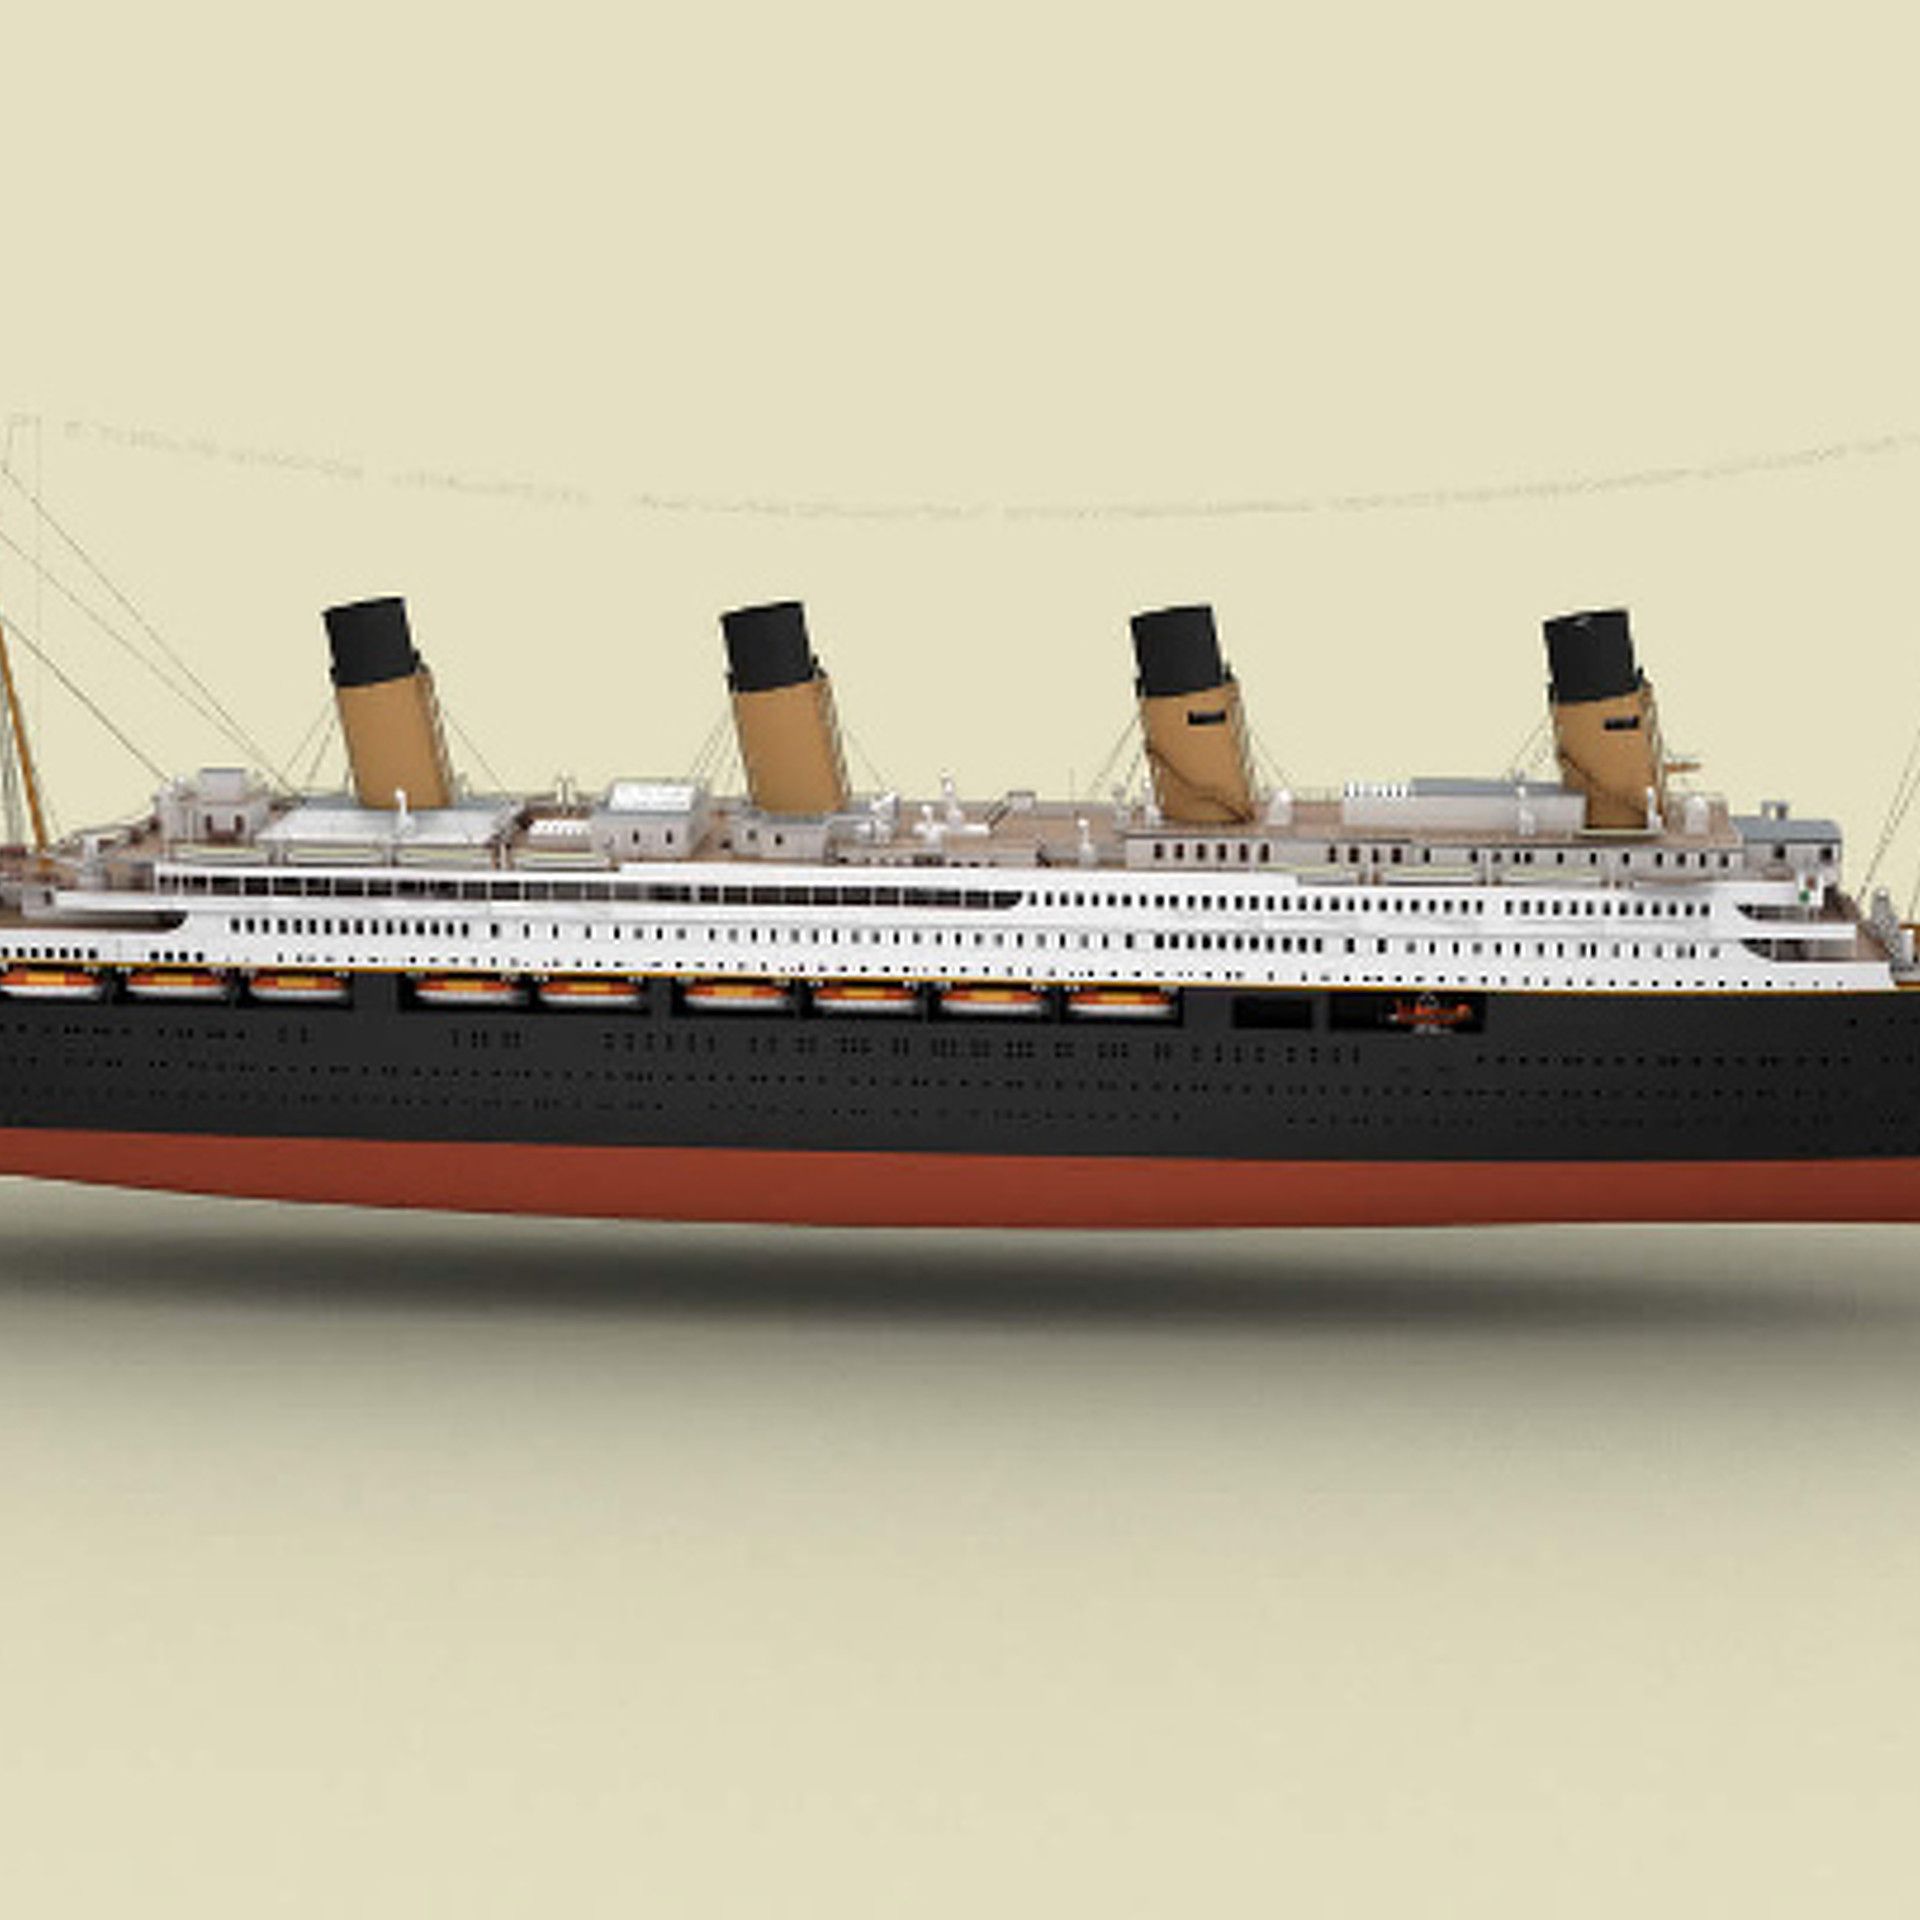 1920x1920 You'd Have to Be Nuts to Ride 'Titanic II' on Its Maiden Voyage